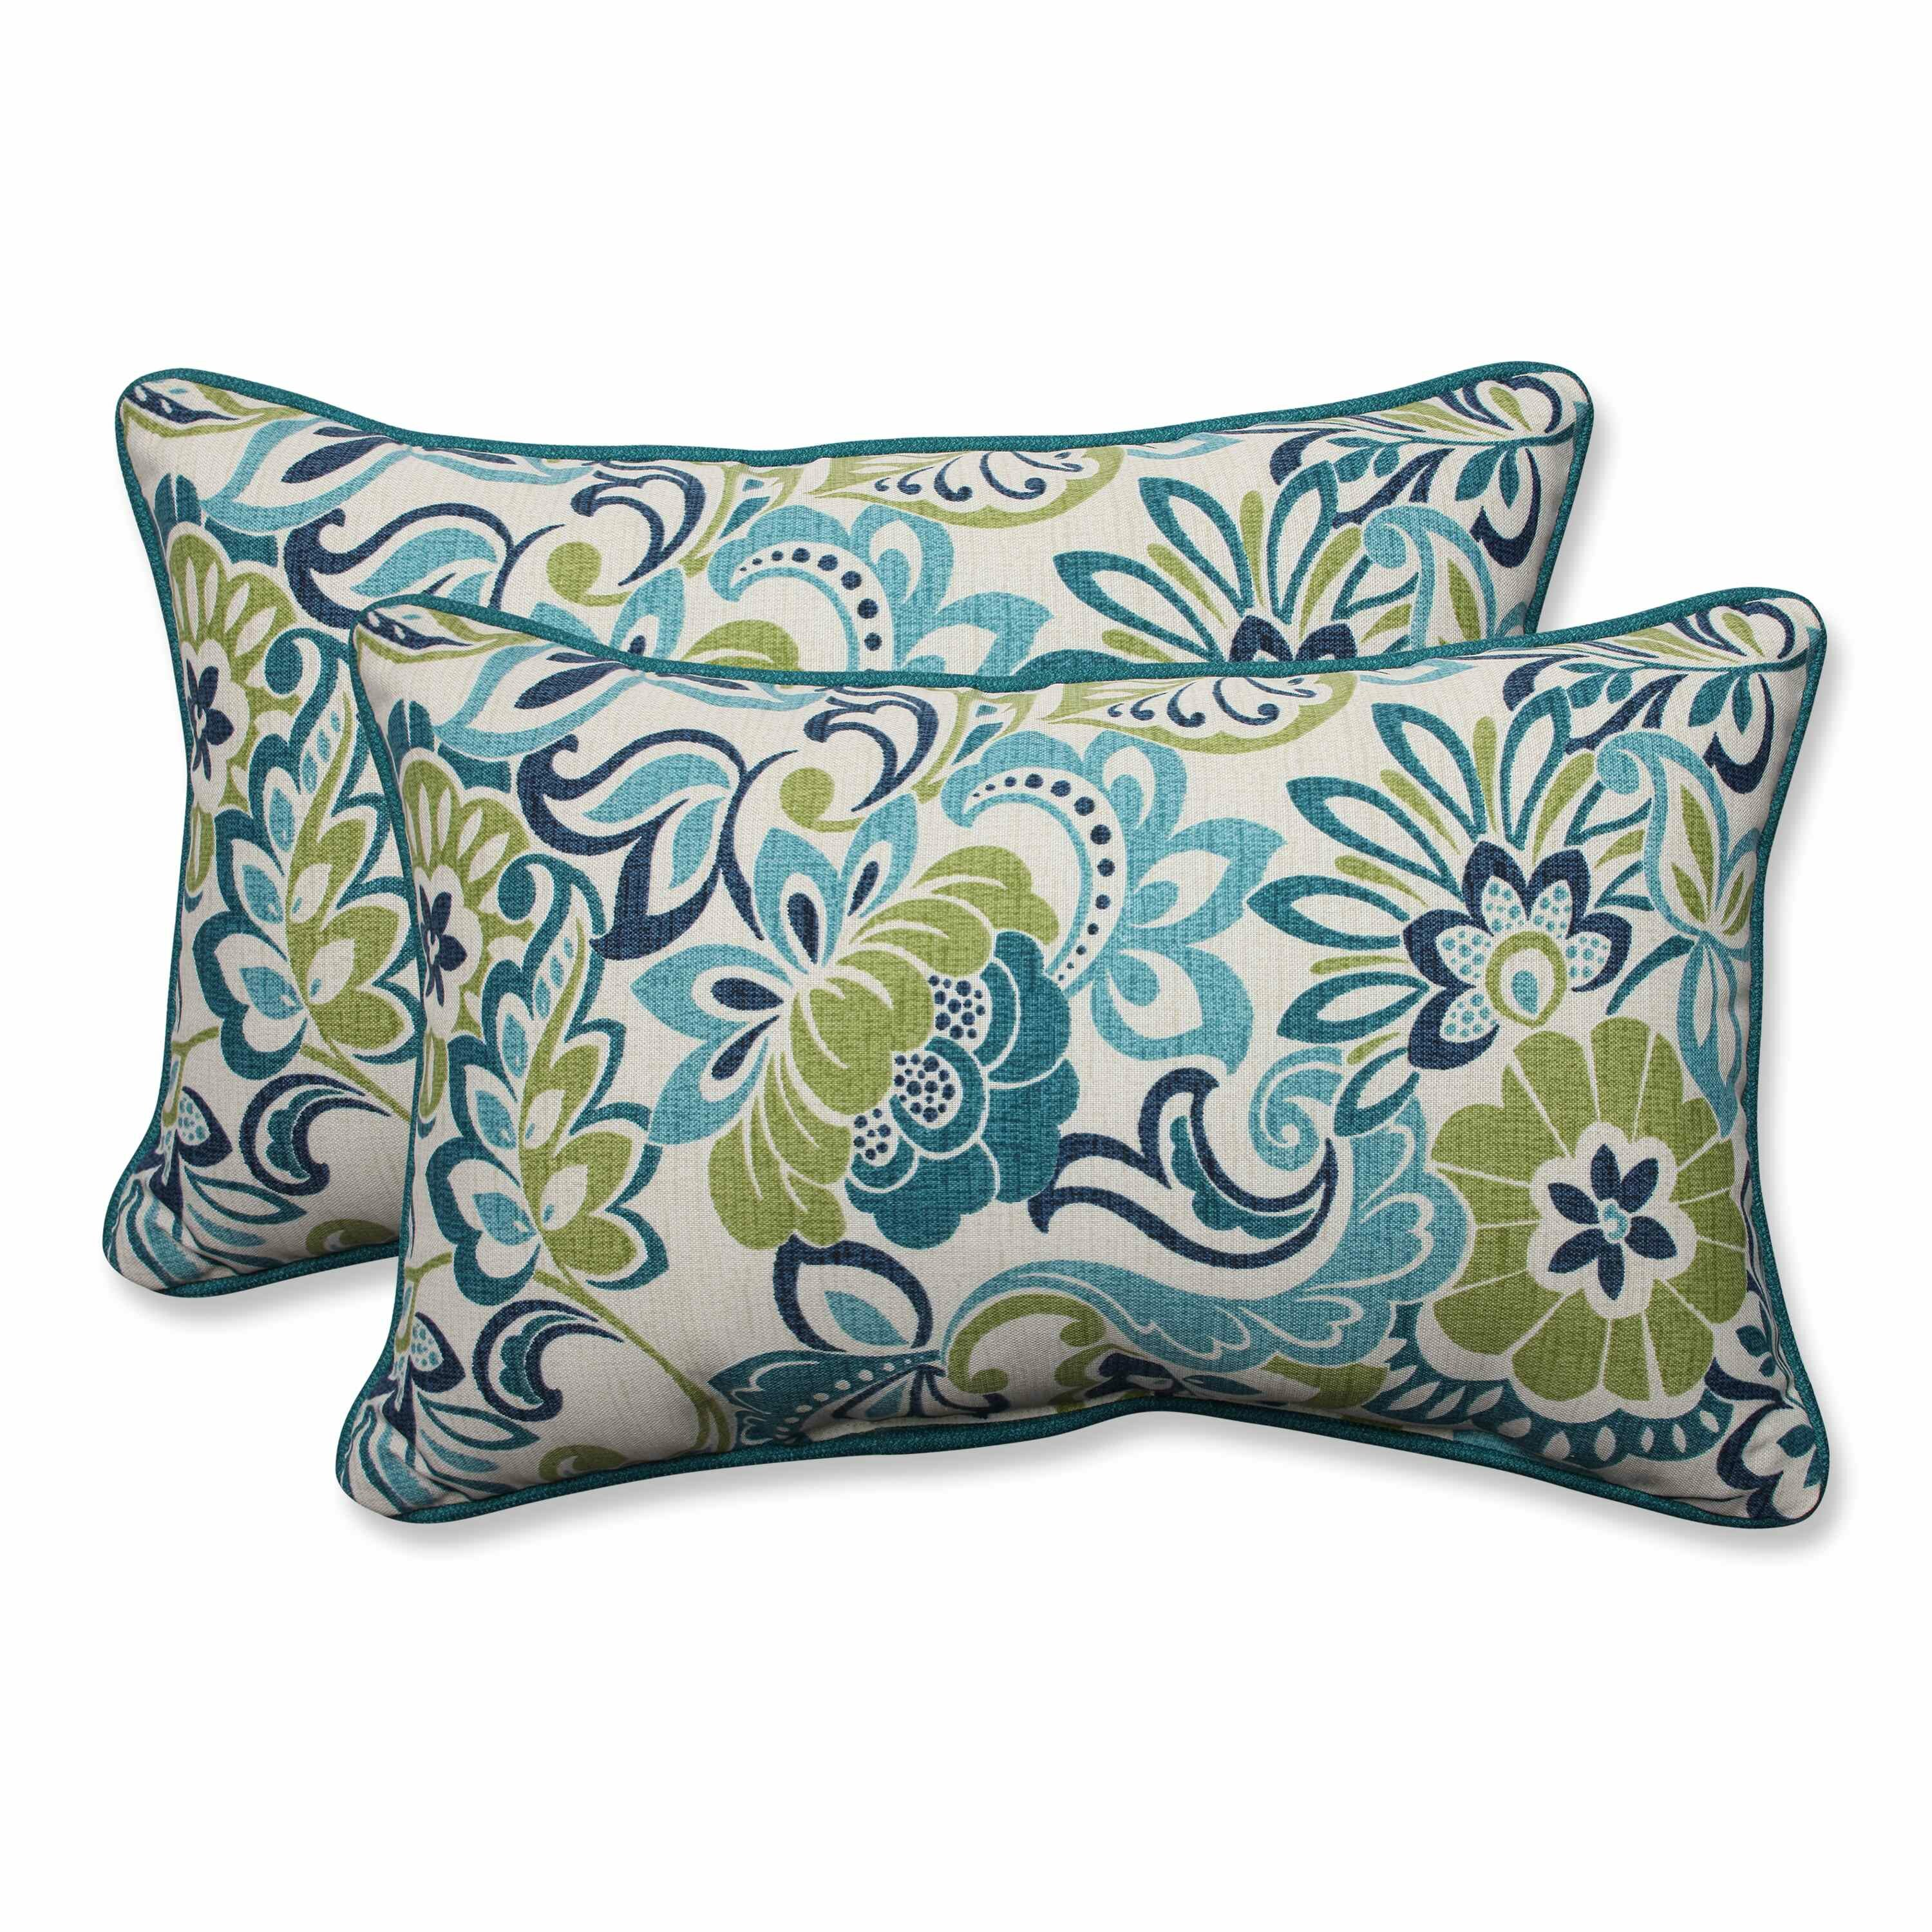 pillow pier stunning uncategorized lumbar blue full coral patio outdoor for decorative pillows throw of sky accessories with one size lovely